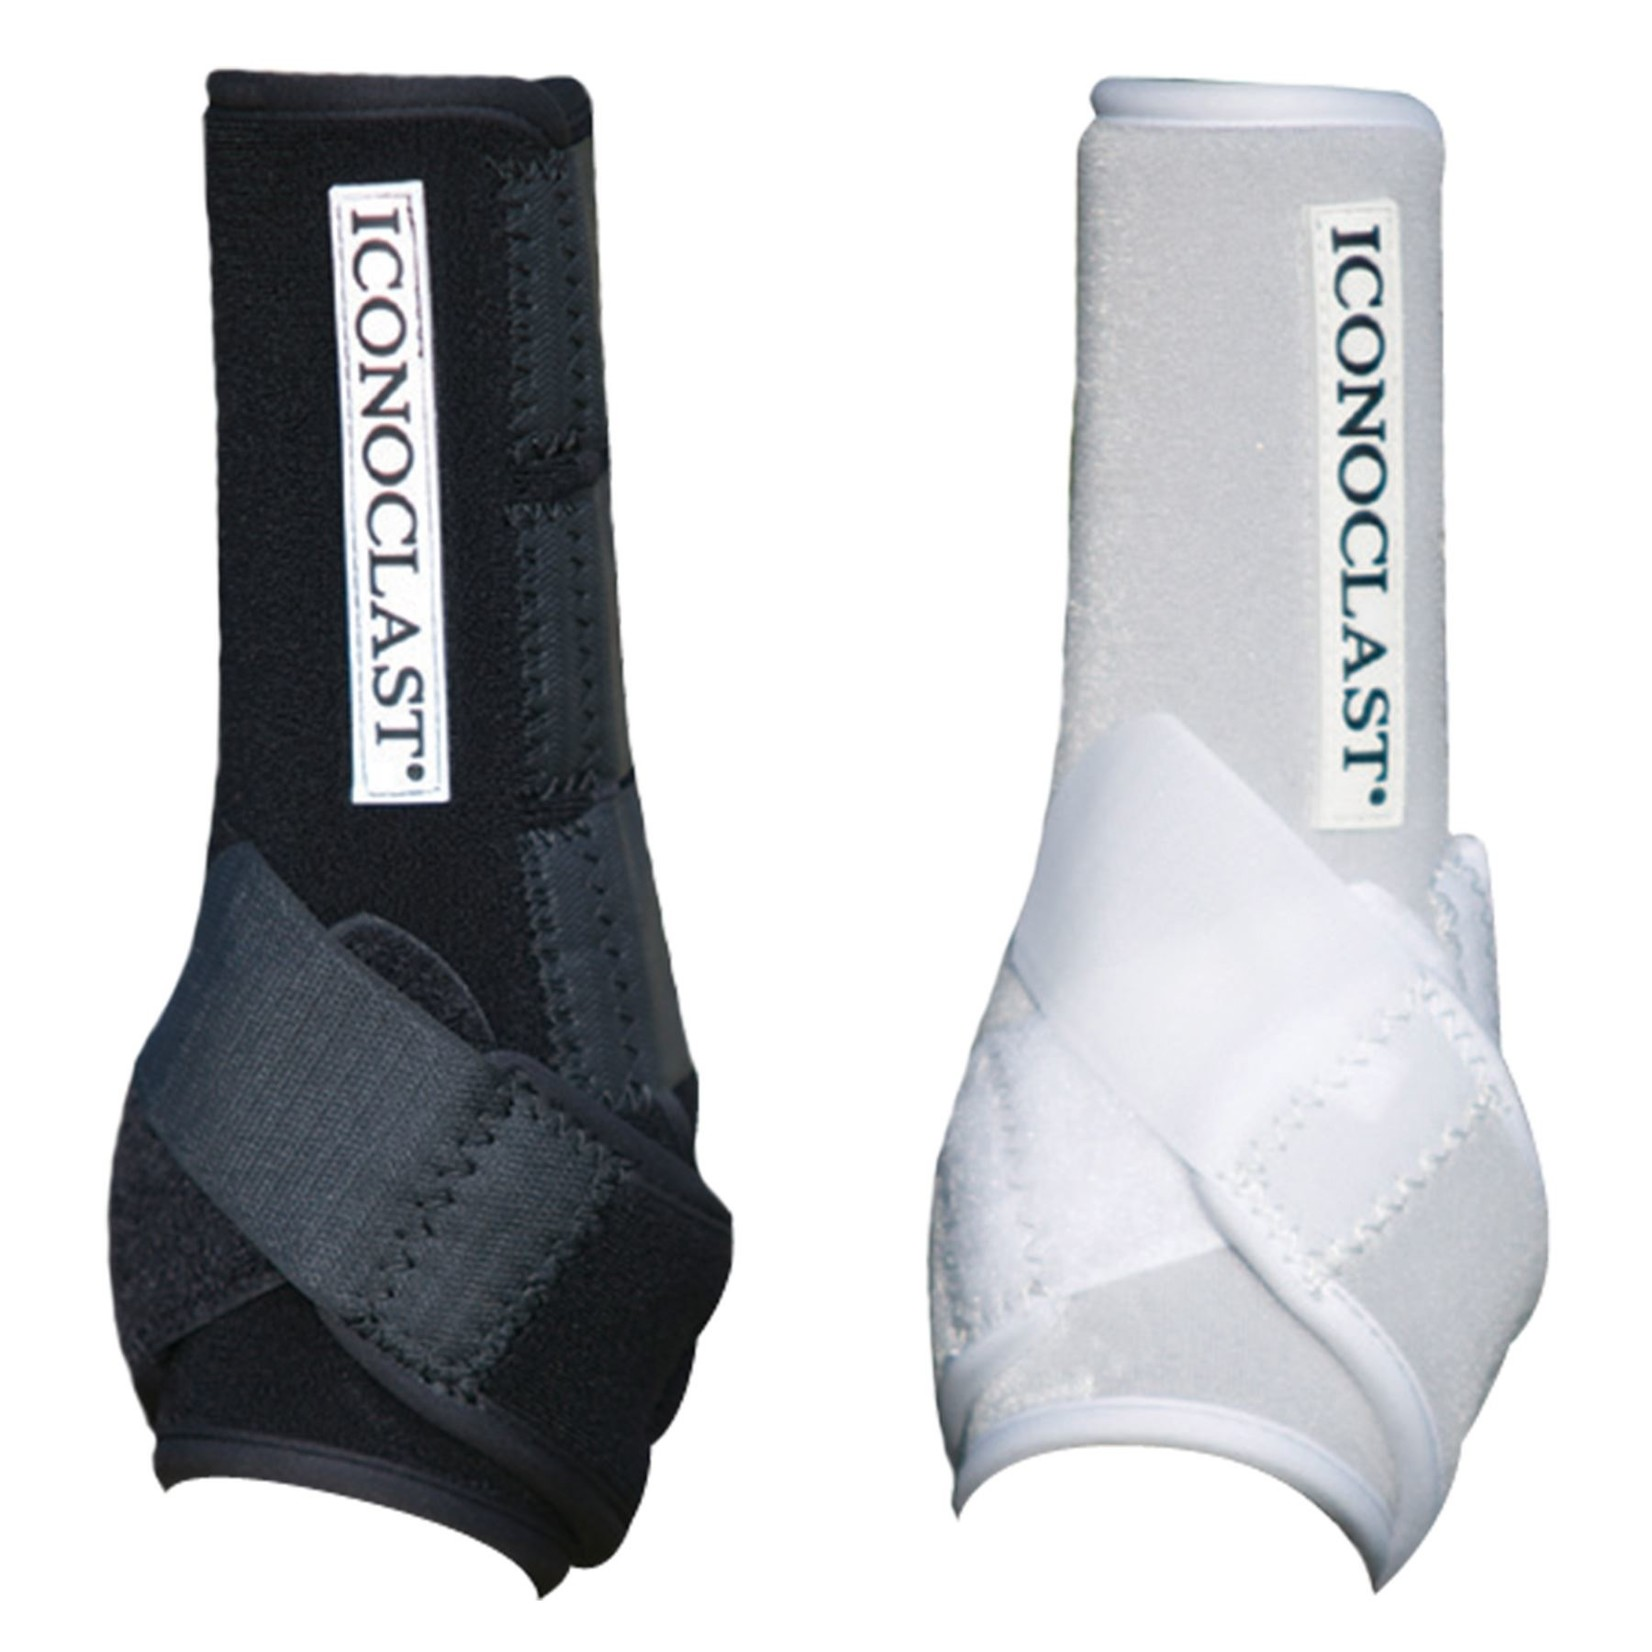 Iconoclast F Blk/Med